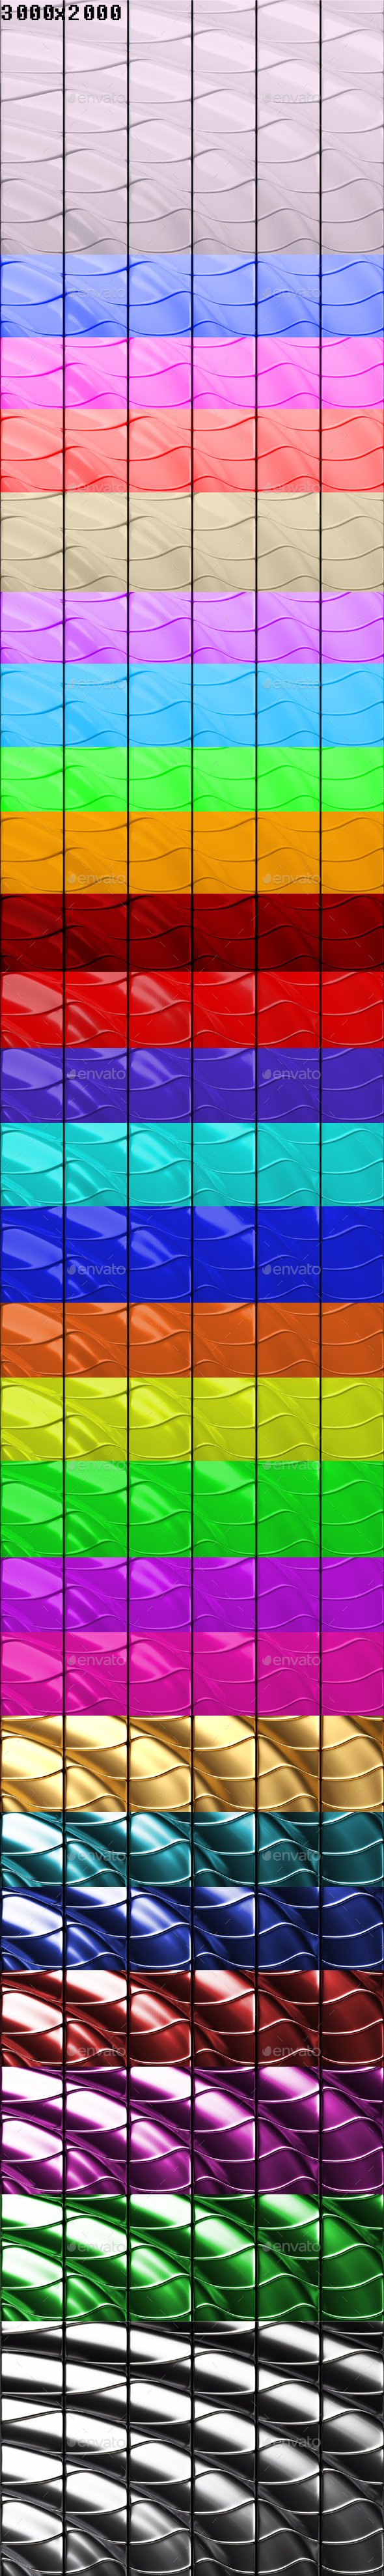 Geometric Waves Wallpapers - Backgrounds Graphics